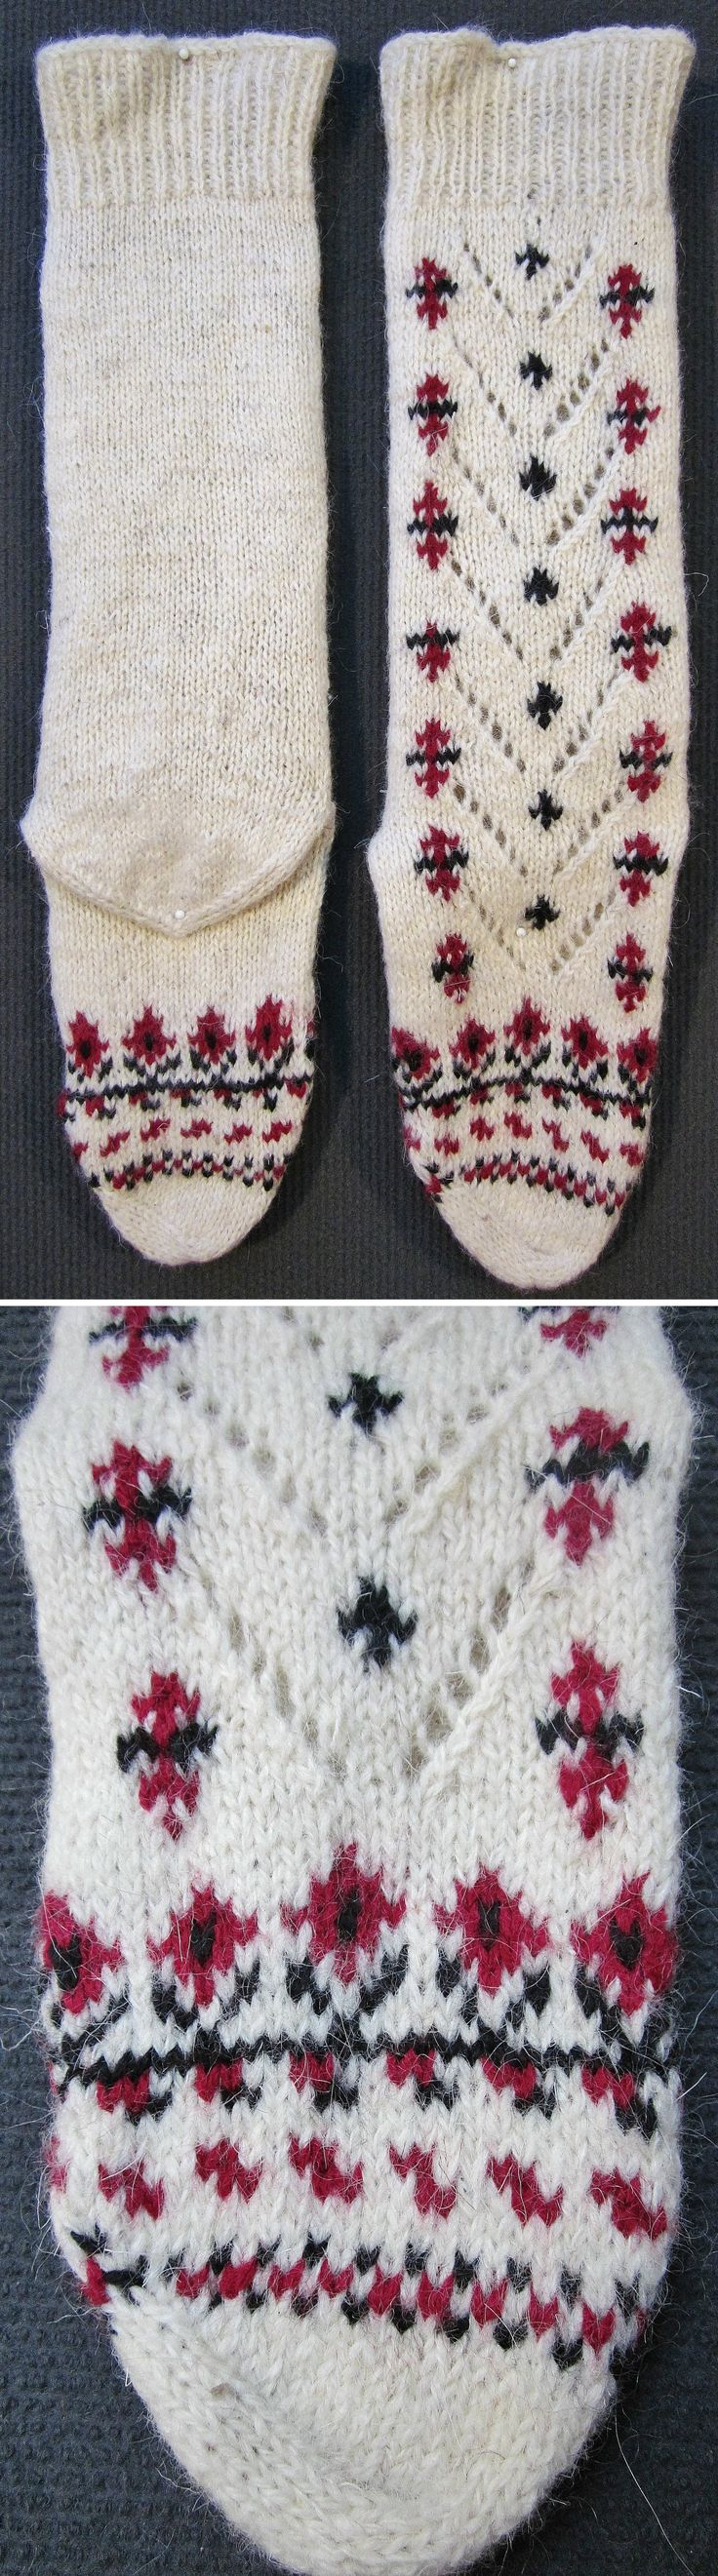 Traditional woollen socks, for women.  From northwestern Anatolia, ca. 1990.  (Inv.n° çor196d - Kavak Costume Collection - Antwerpen/Belgium).